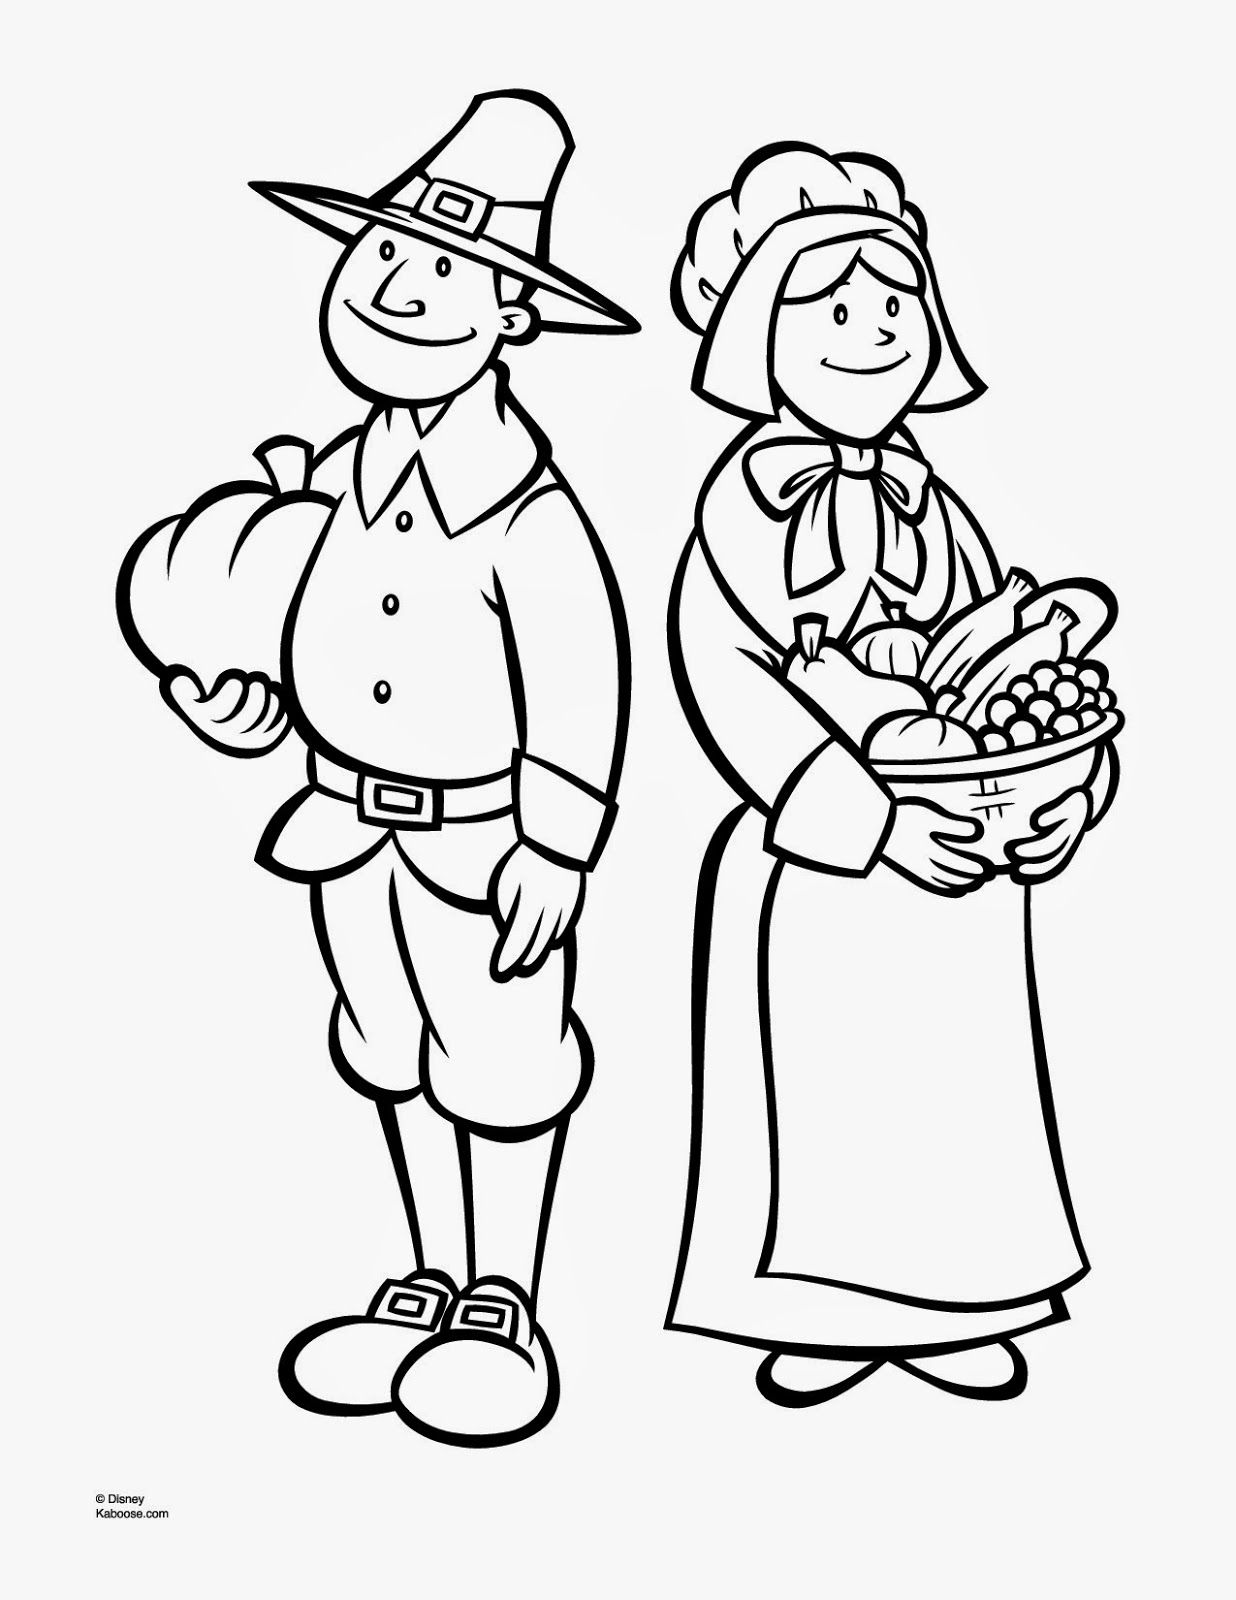 Thanksgiving Day Printable Coloring Pages Minnesota Miranda Thanksgiving Coloring Pages Free Thanksgiving Coloring Pages Thanksgiving Coloring Sheets [ 1600 x 1236 Pixel ]